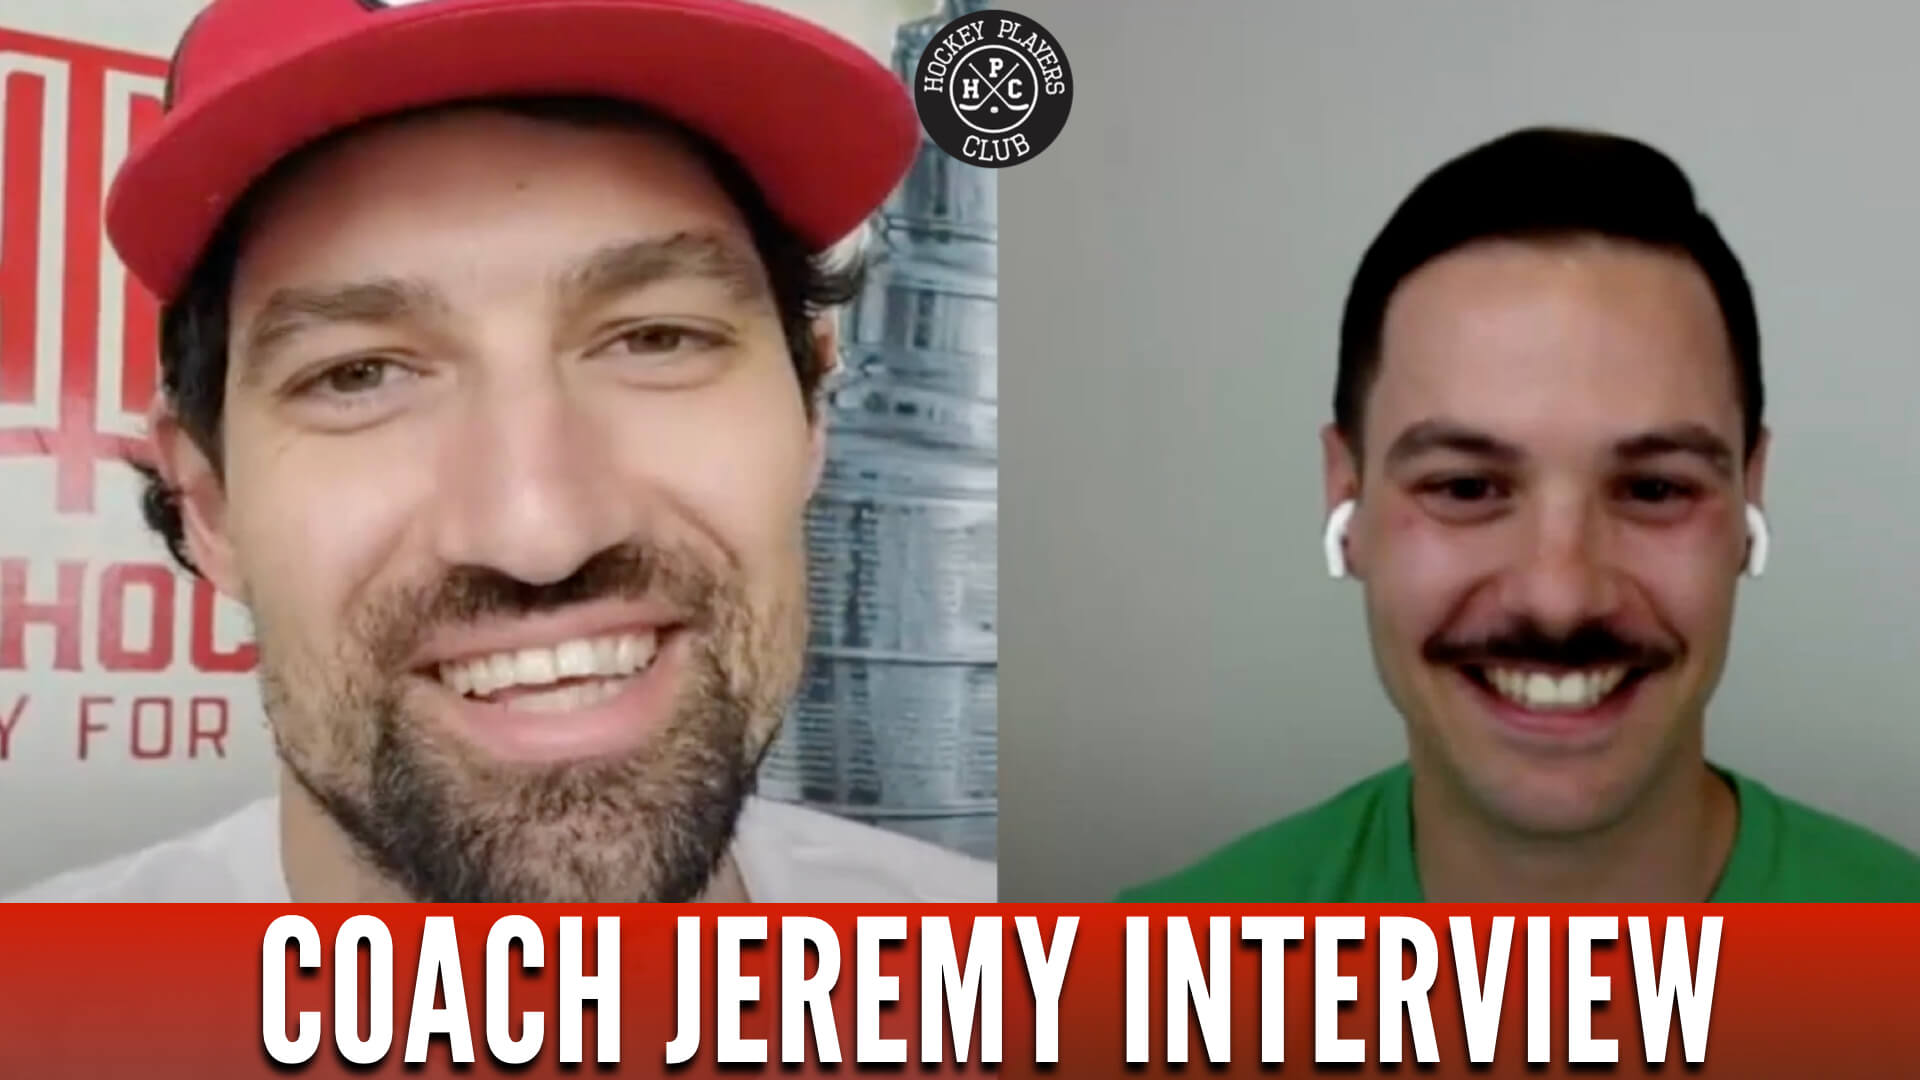 Interview: Coach Jeremy of How To Hockey